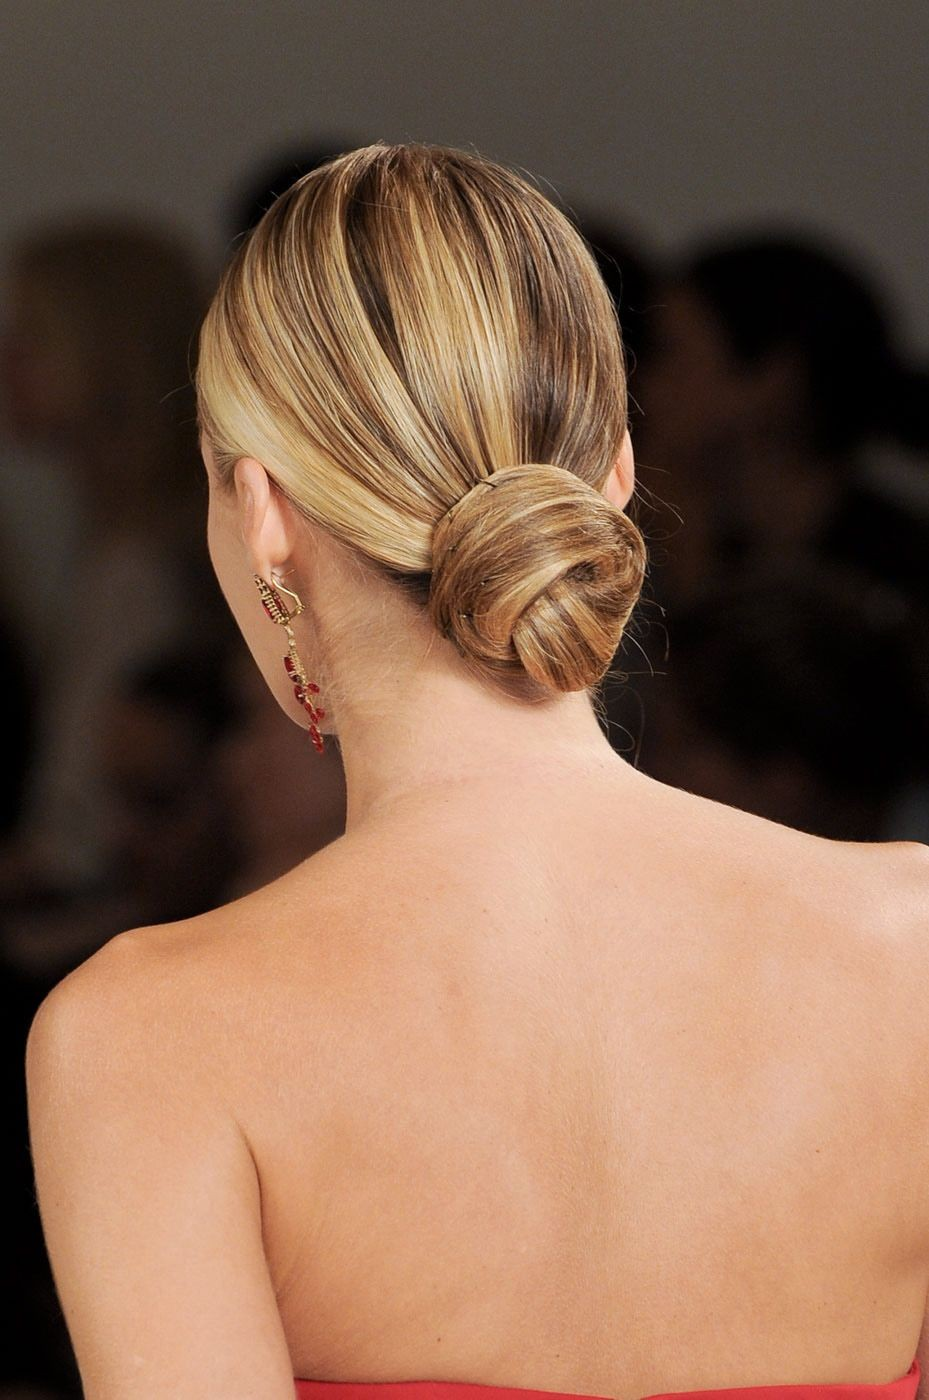 Low Knotted Bun Short Hairstyles 2019